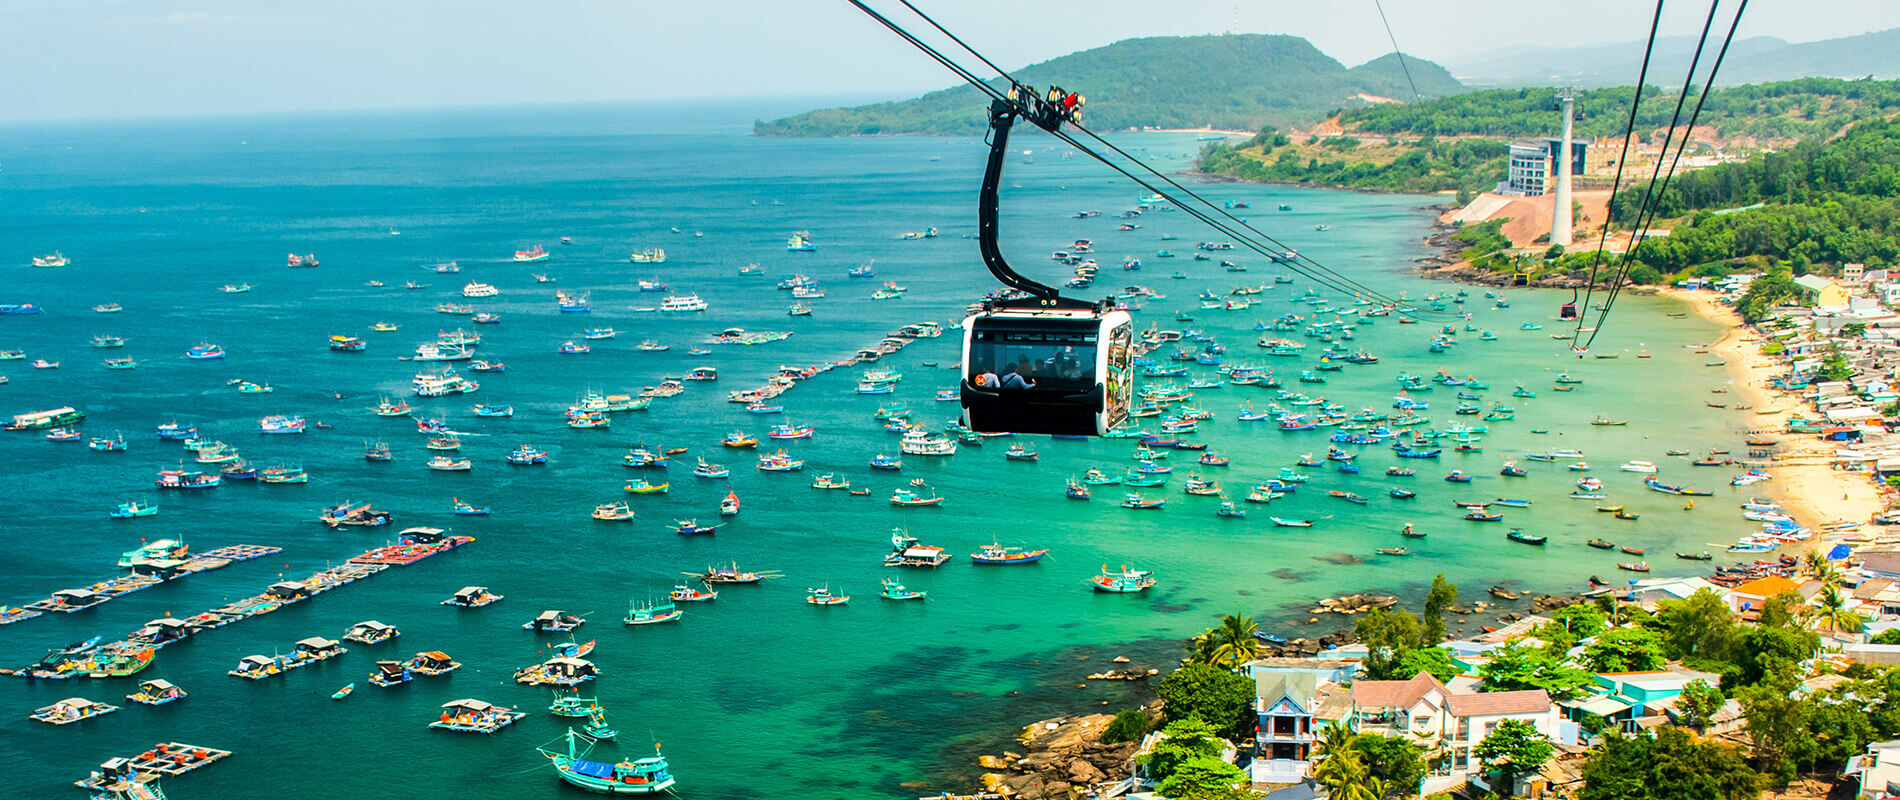 Hon Thom Cable Car, the longest cable car in the world